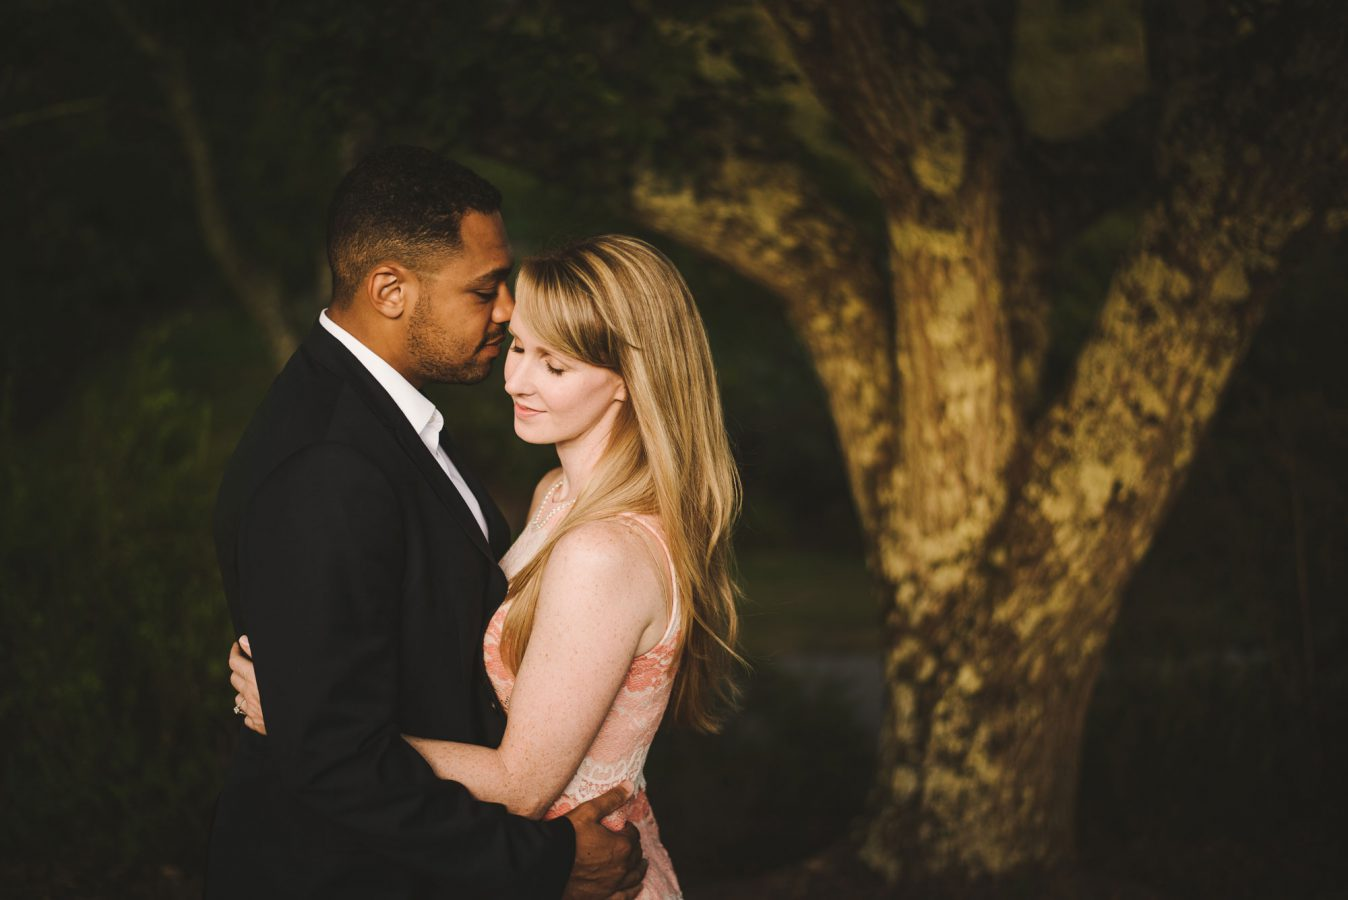 biltmore-engagement-photography-001